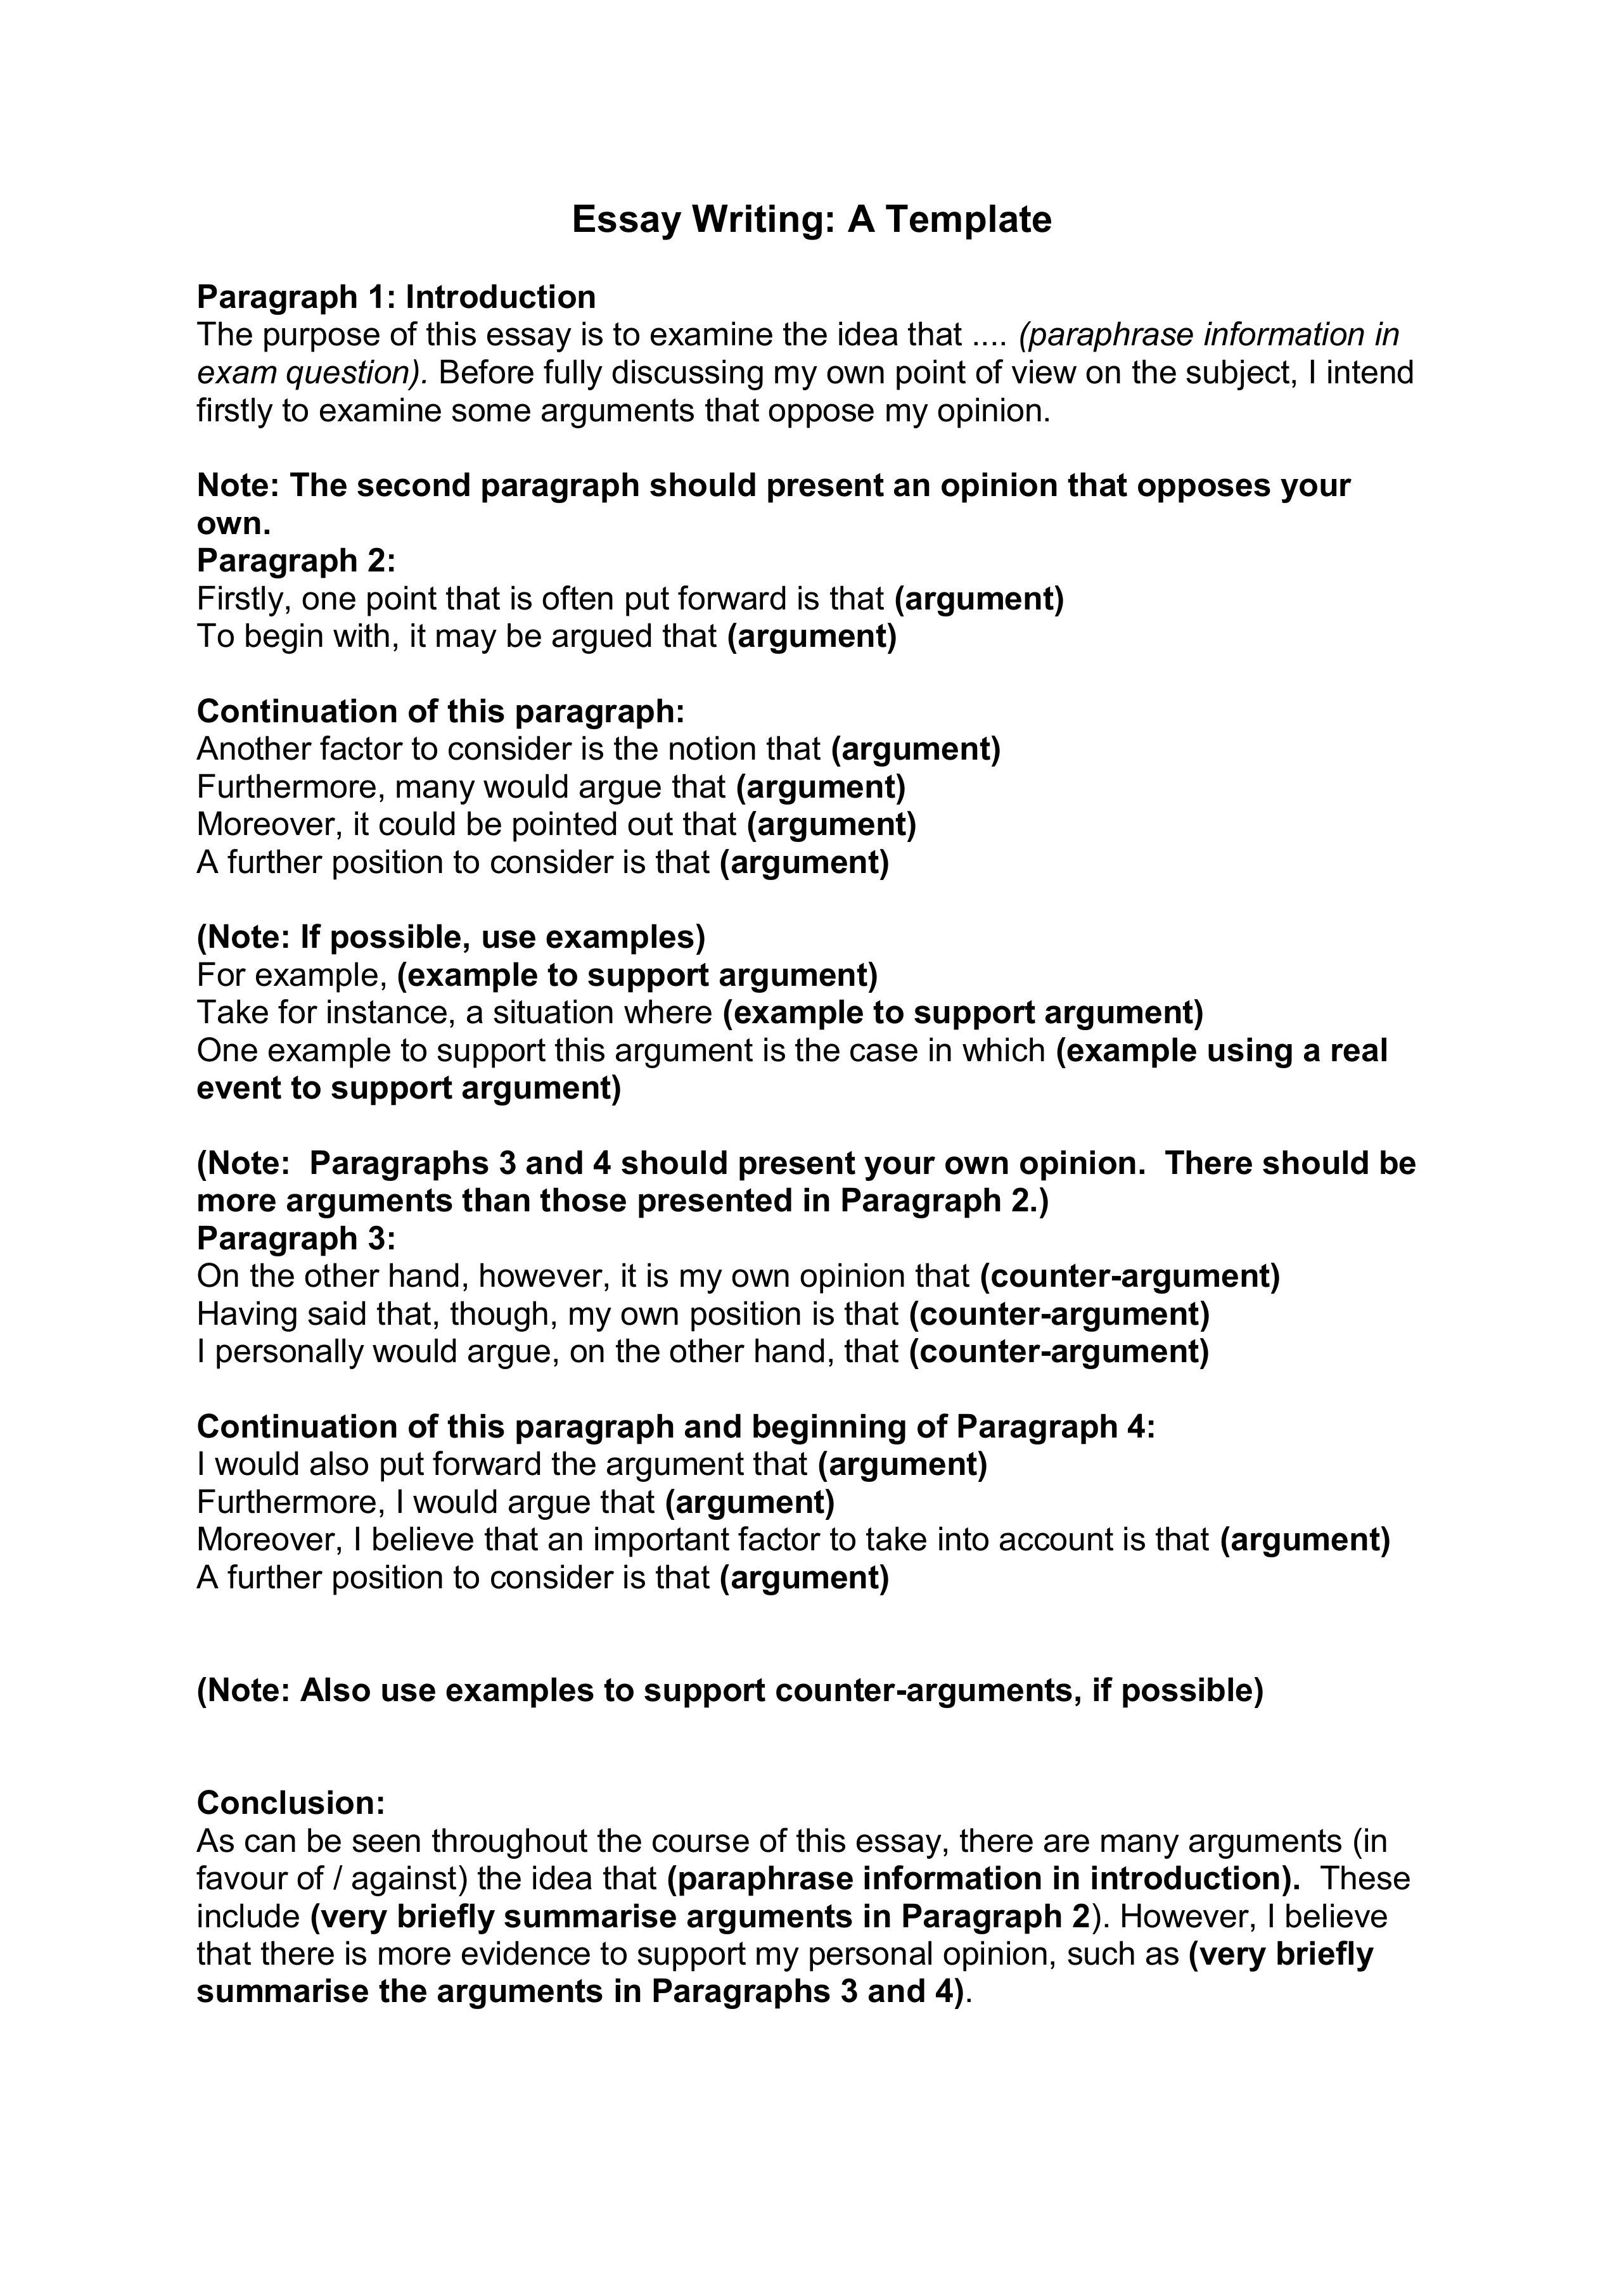 016 Image Essay Writing Homework Service Byassignmentdepa Good This I Believe Topics Template For P Sampless Stupendous Examples Npr College Full